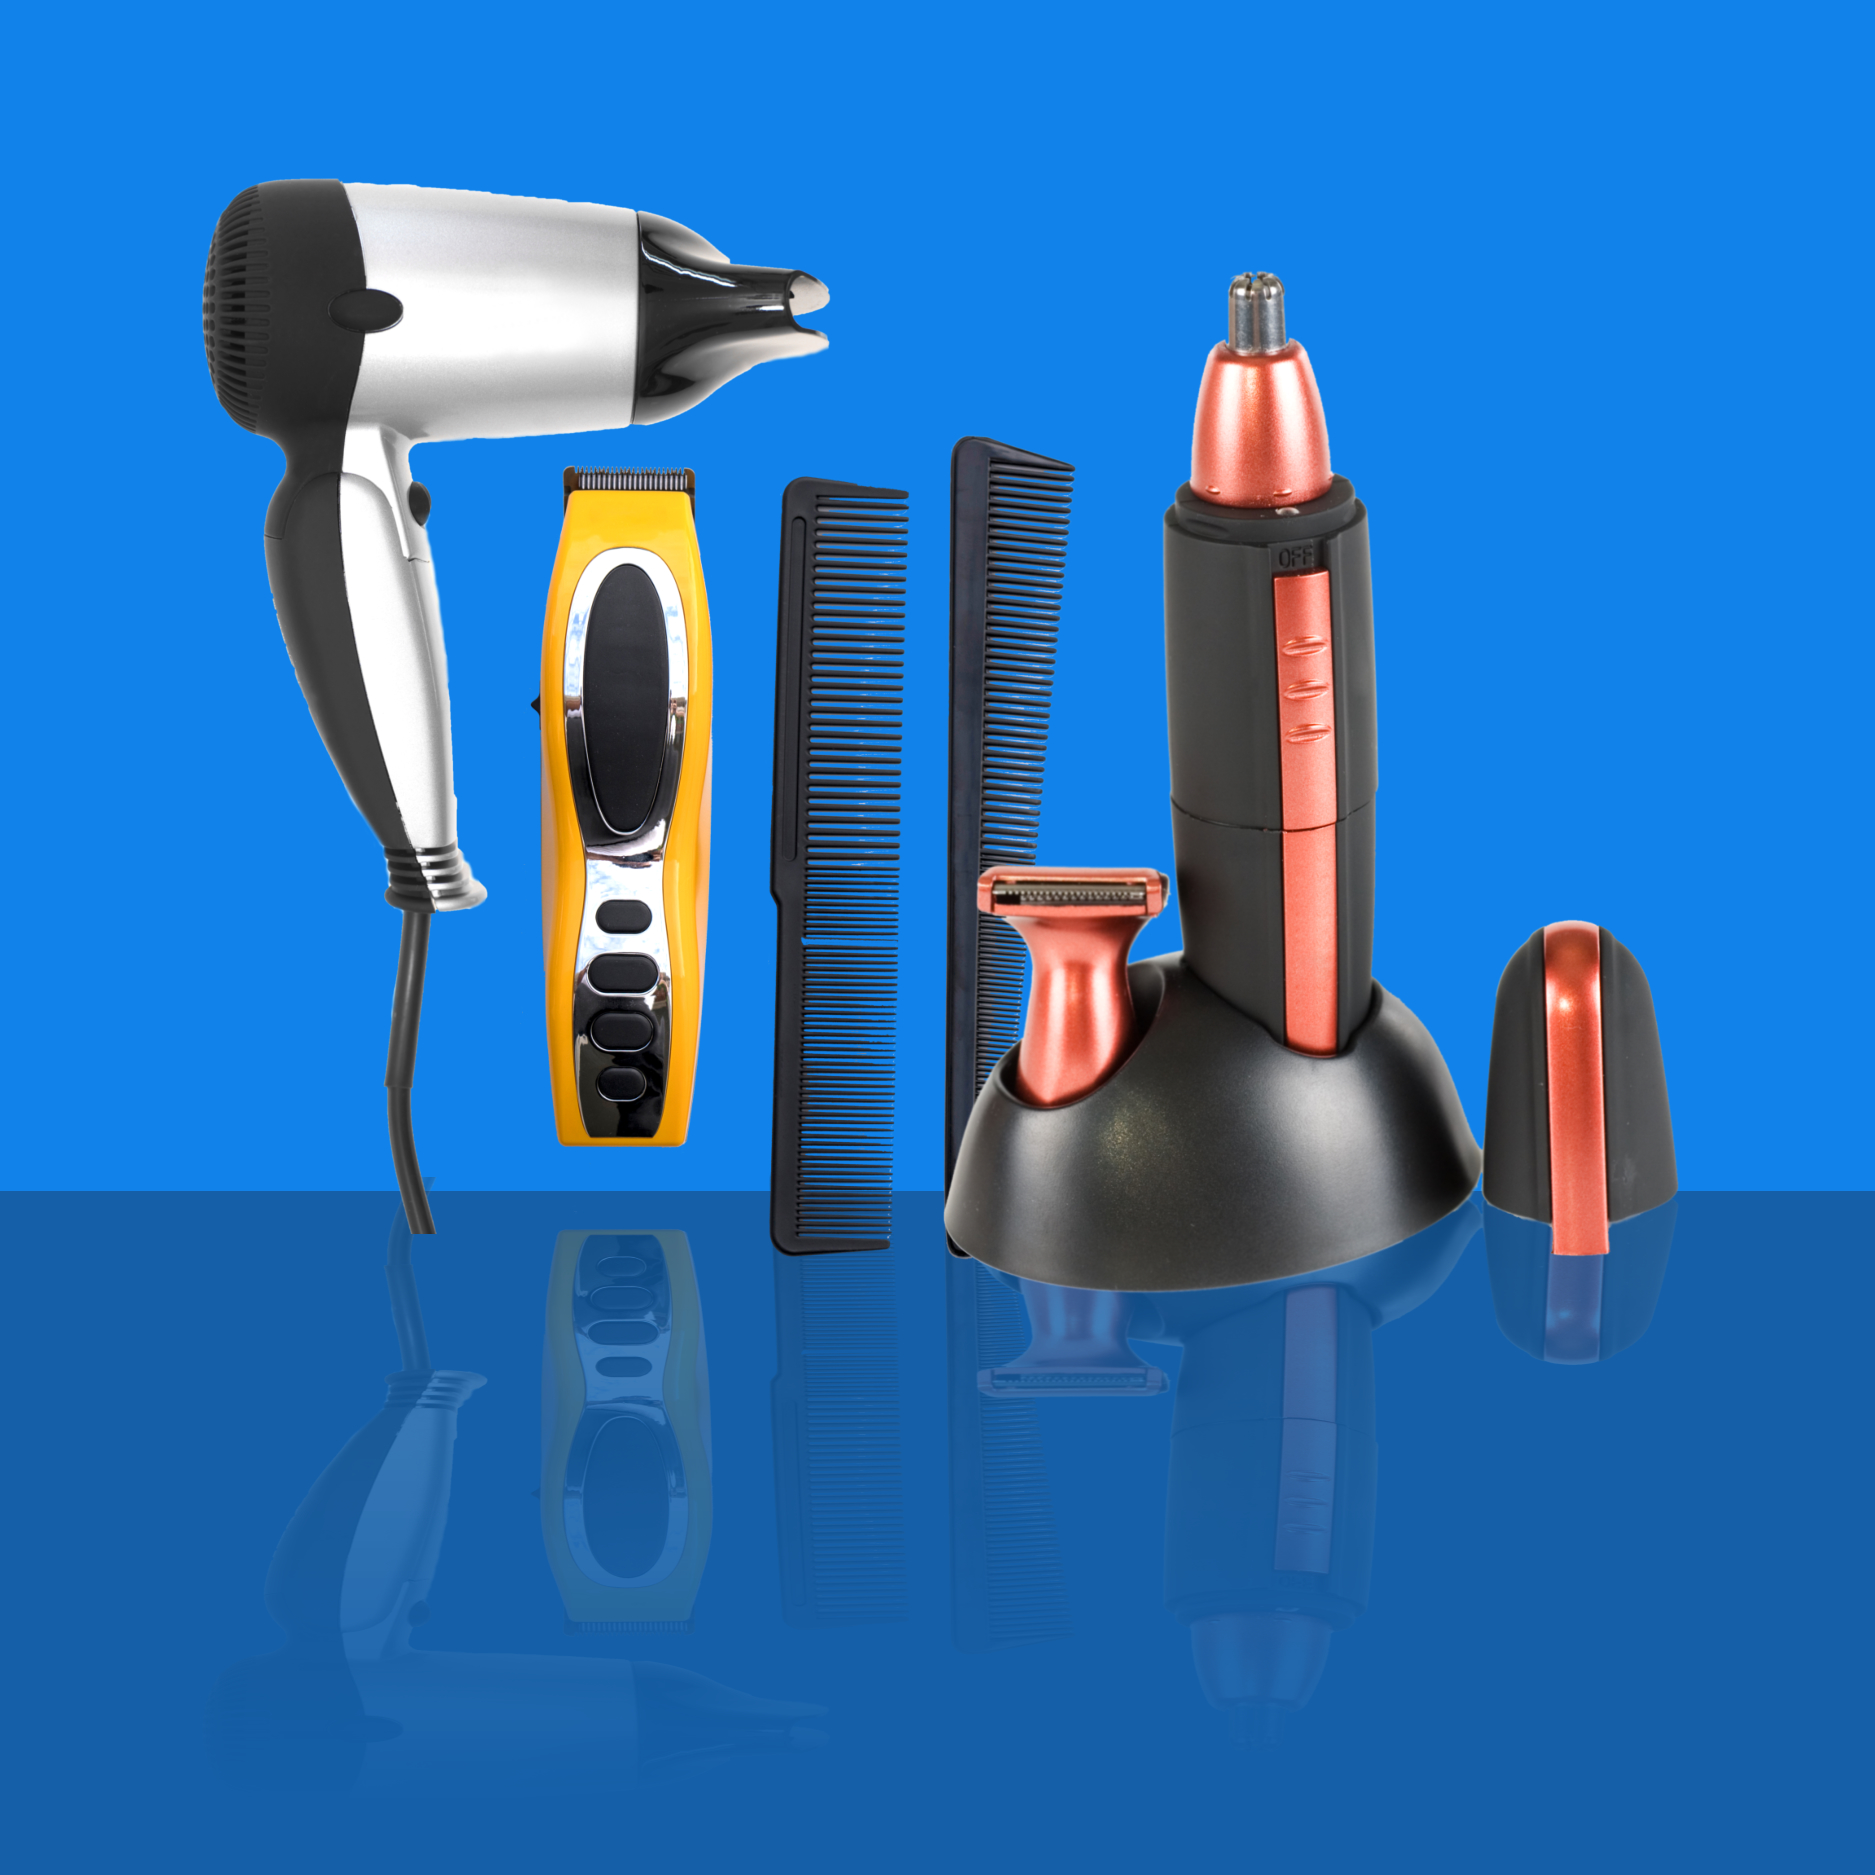 SHAVING AND MENS GROOMING